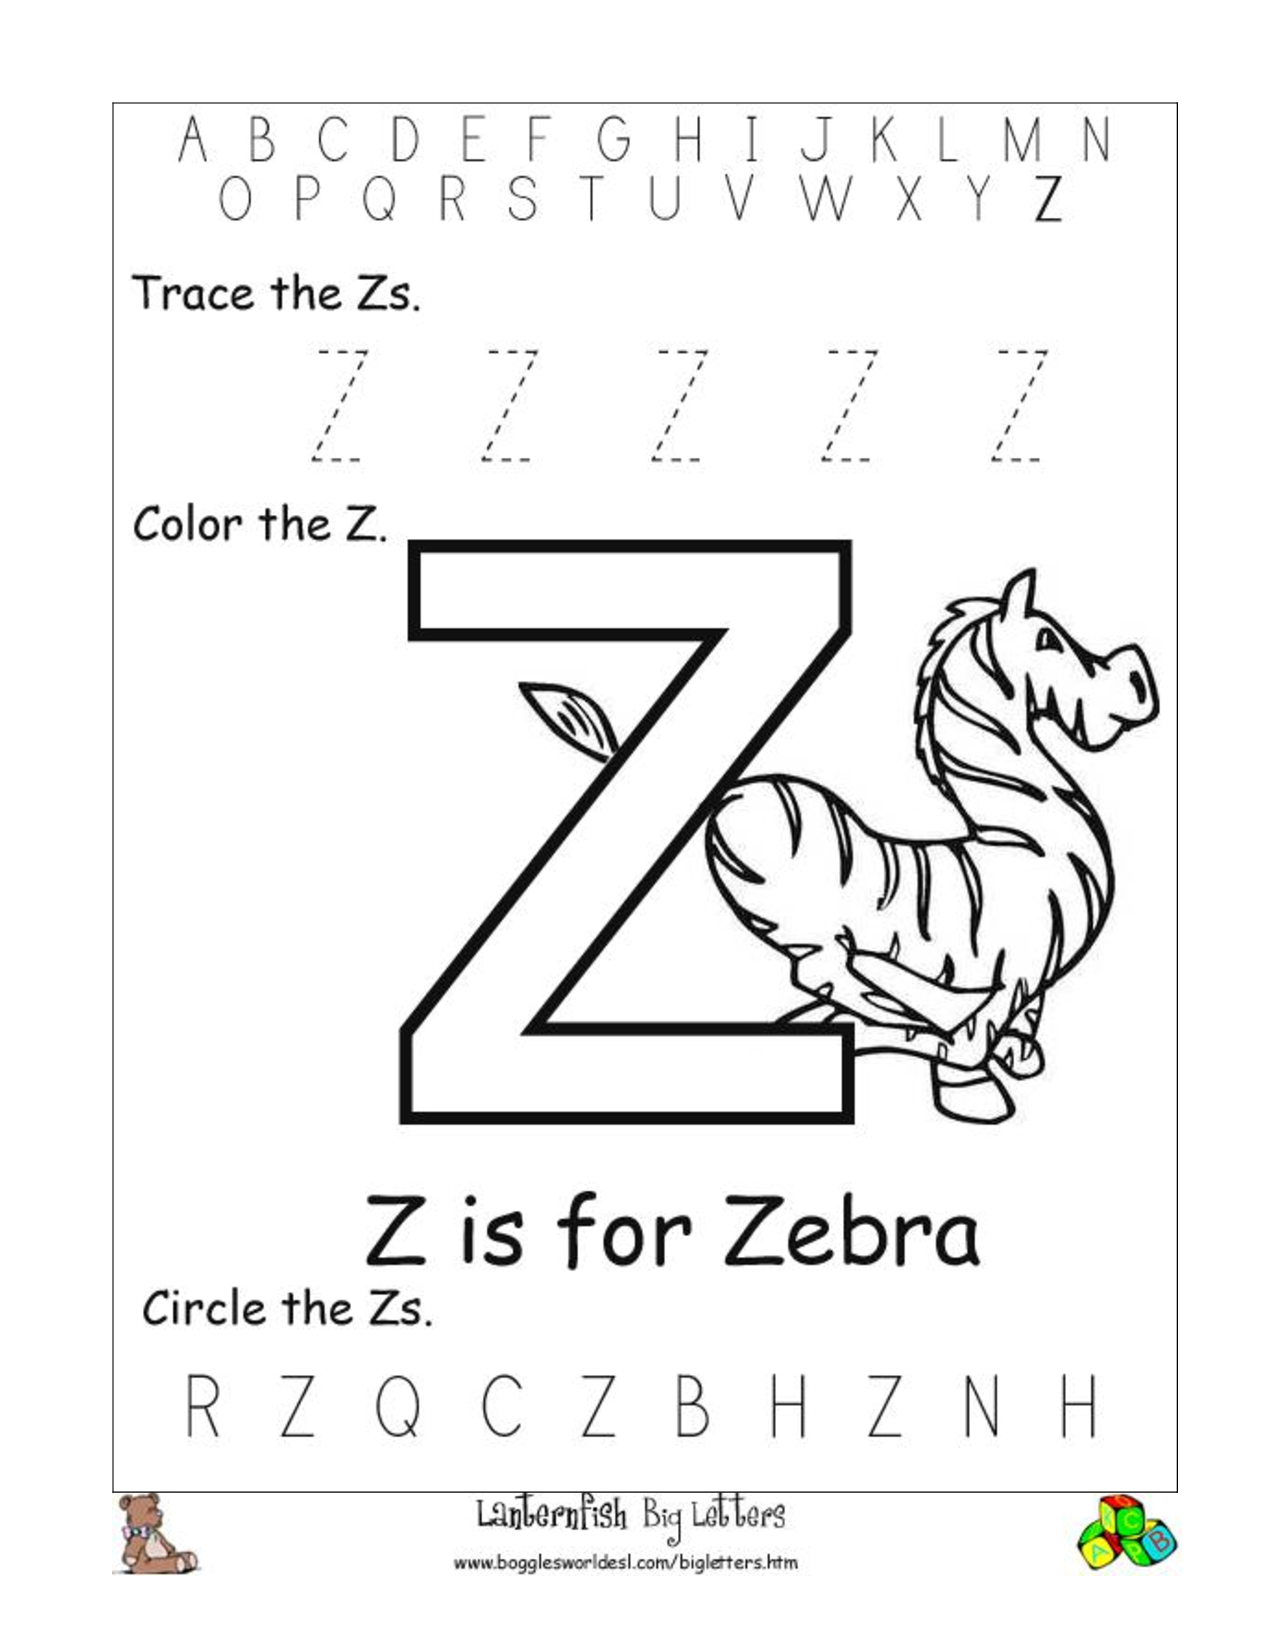 alphabet worksheets for preschoolers alphabet worksheet big letter z download as doc. Black Bedroom Furniture Sets. Home Design Ideas